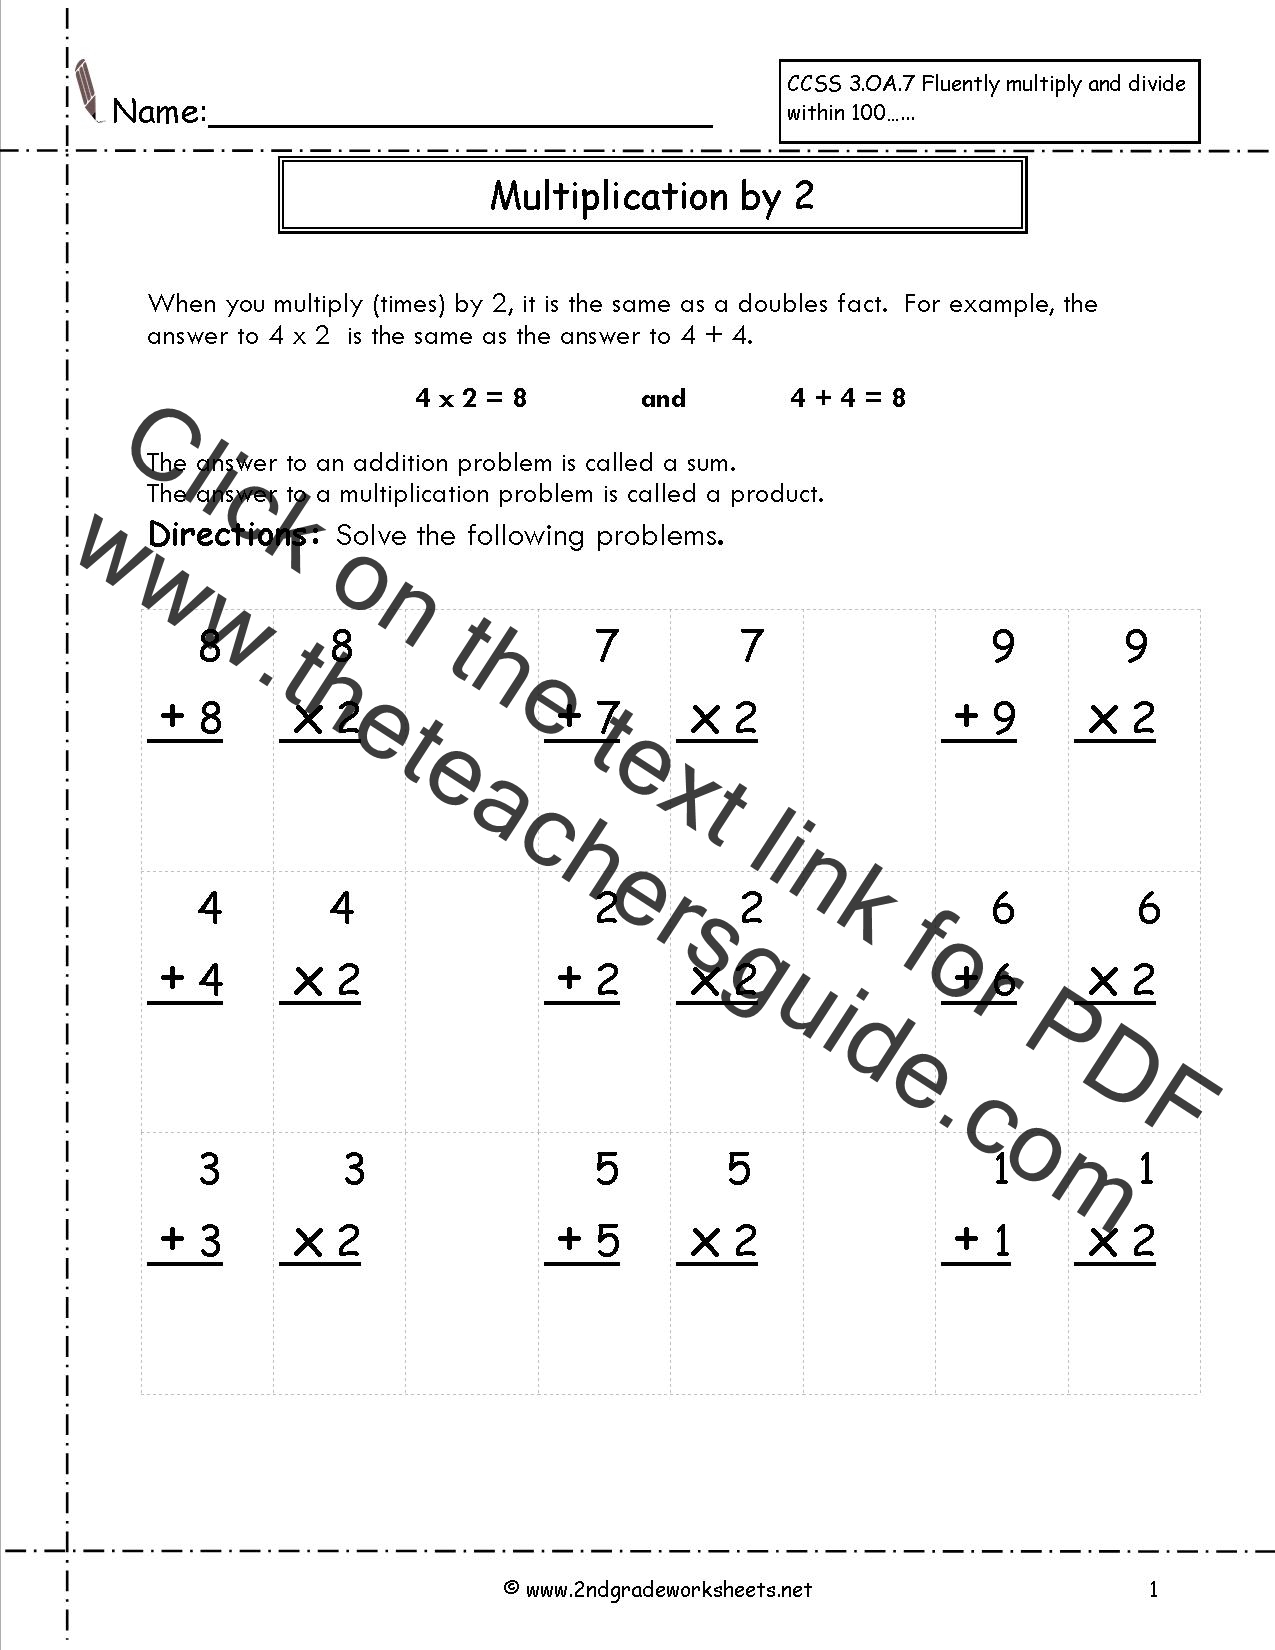 Multiplication Worksheets and Printouts – Multiplication 2 Worksheets